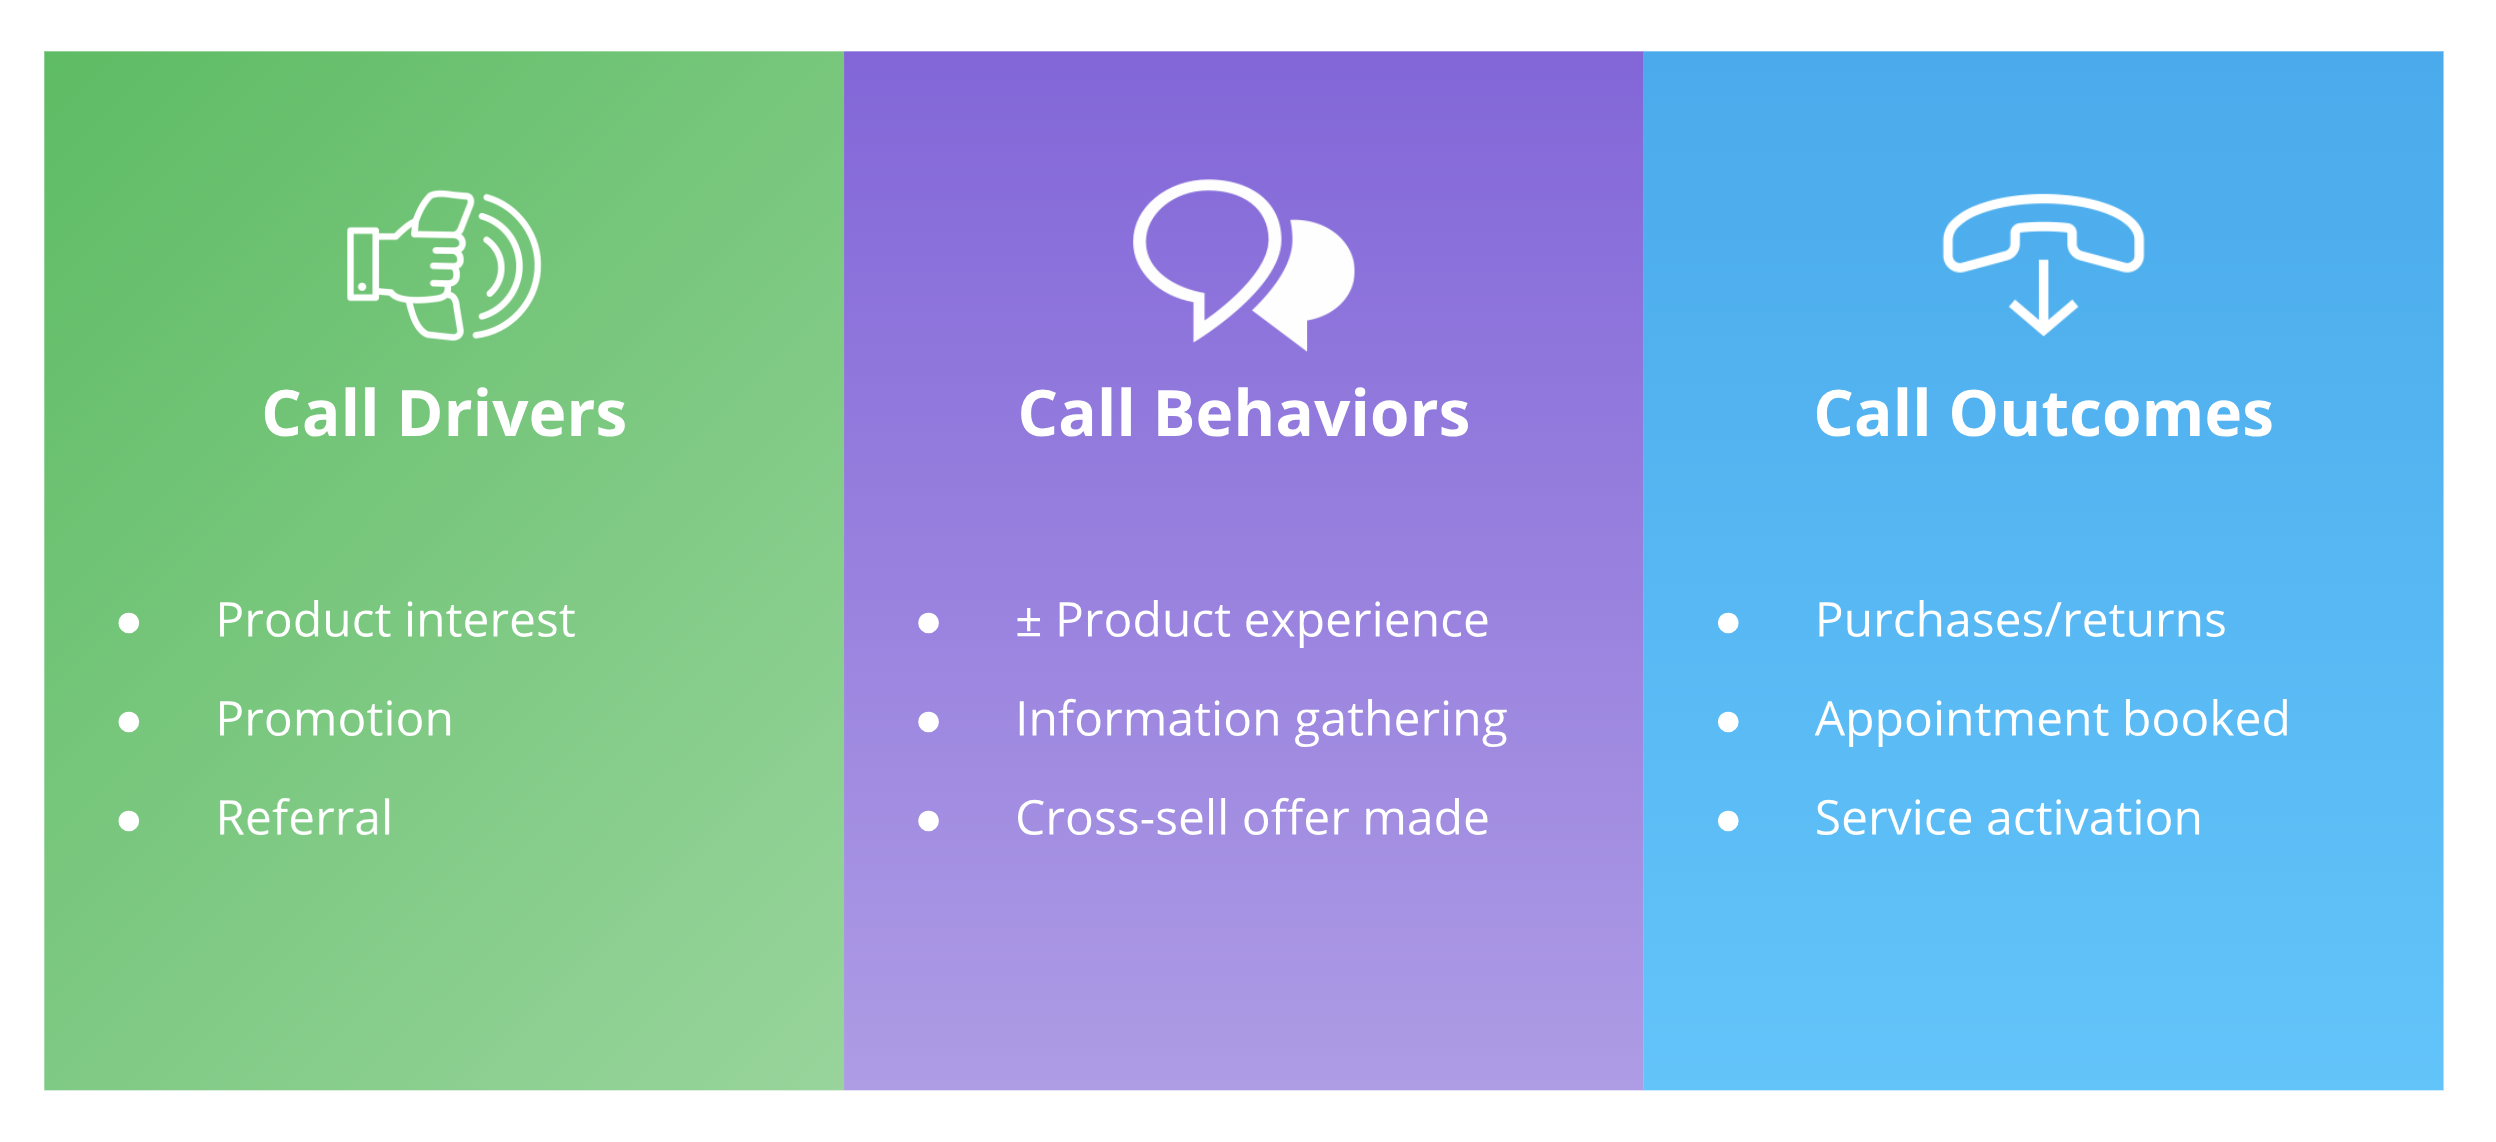 using call tracking to identify call drivers behaviors and outcomes